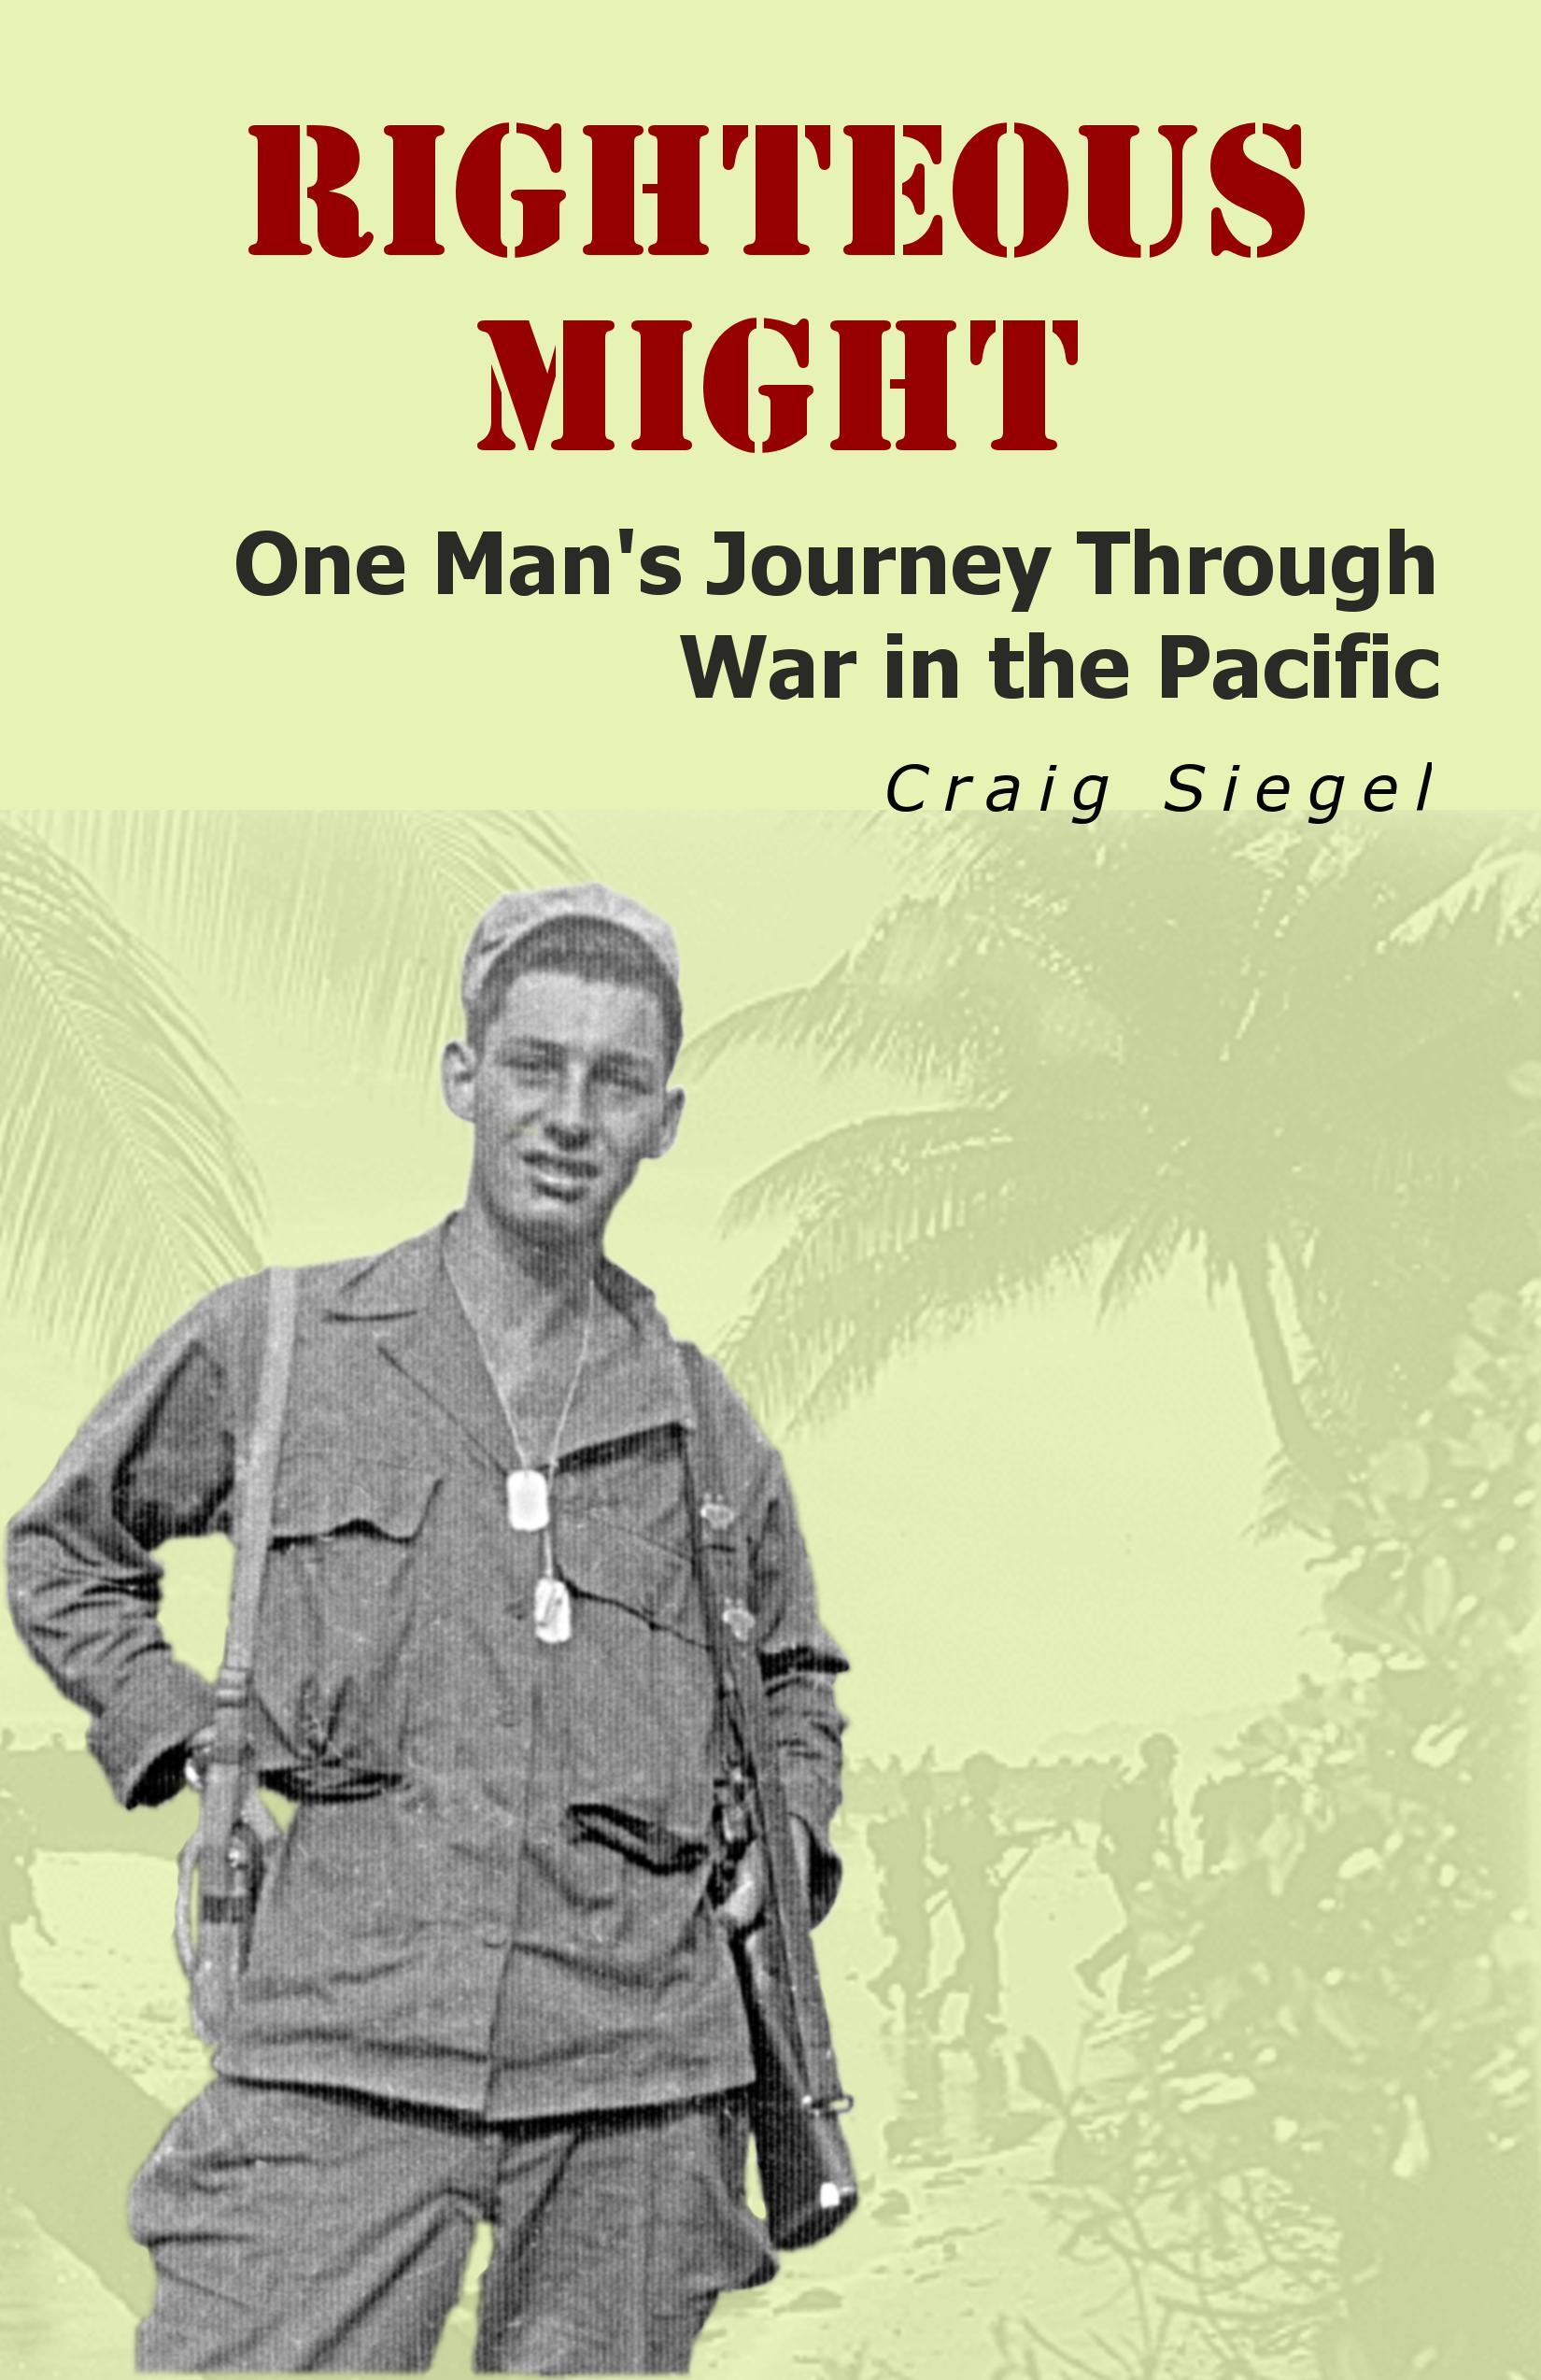 Righteous Might: One Man's Journey Through War in the Pacific